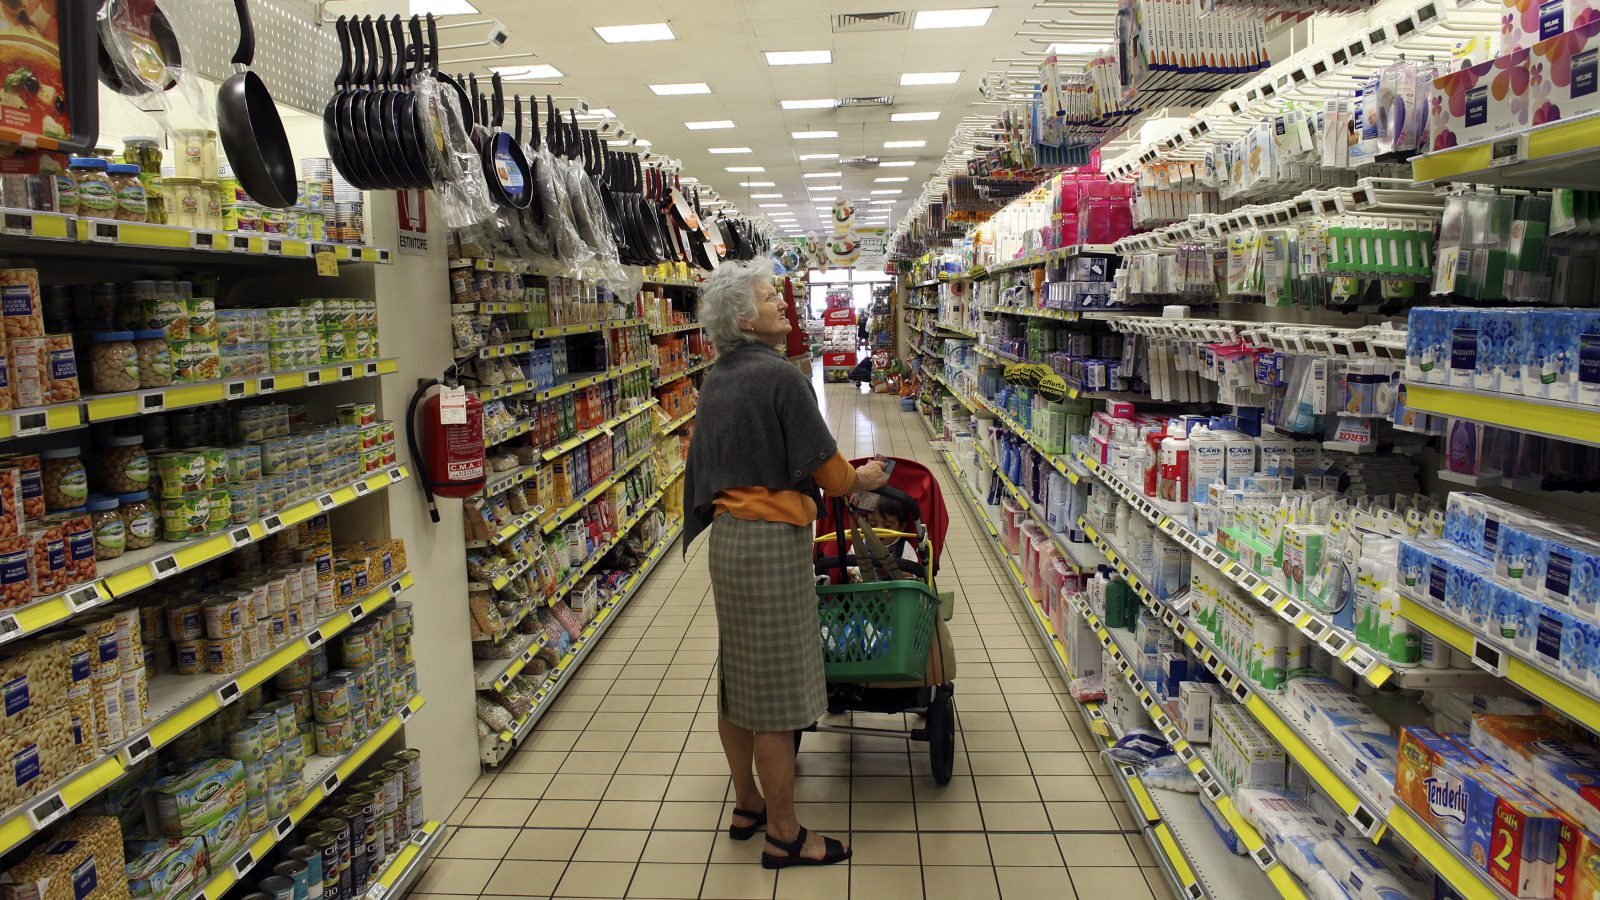 A woman shops at a supermarket in Milan, September 5, 2012. Italy is officially targeting the general government deficit to fall steeply to 1.7 percent of gross domestic product this year from 3.9 percent in 2011, though Economy Minister Vittorio Grilli has conceded that the target will not be reached.  REUTERS/Stefano Rellandini  (ITALY - Tags: SOCIETY BUSINESS) - RTR37IMF